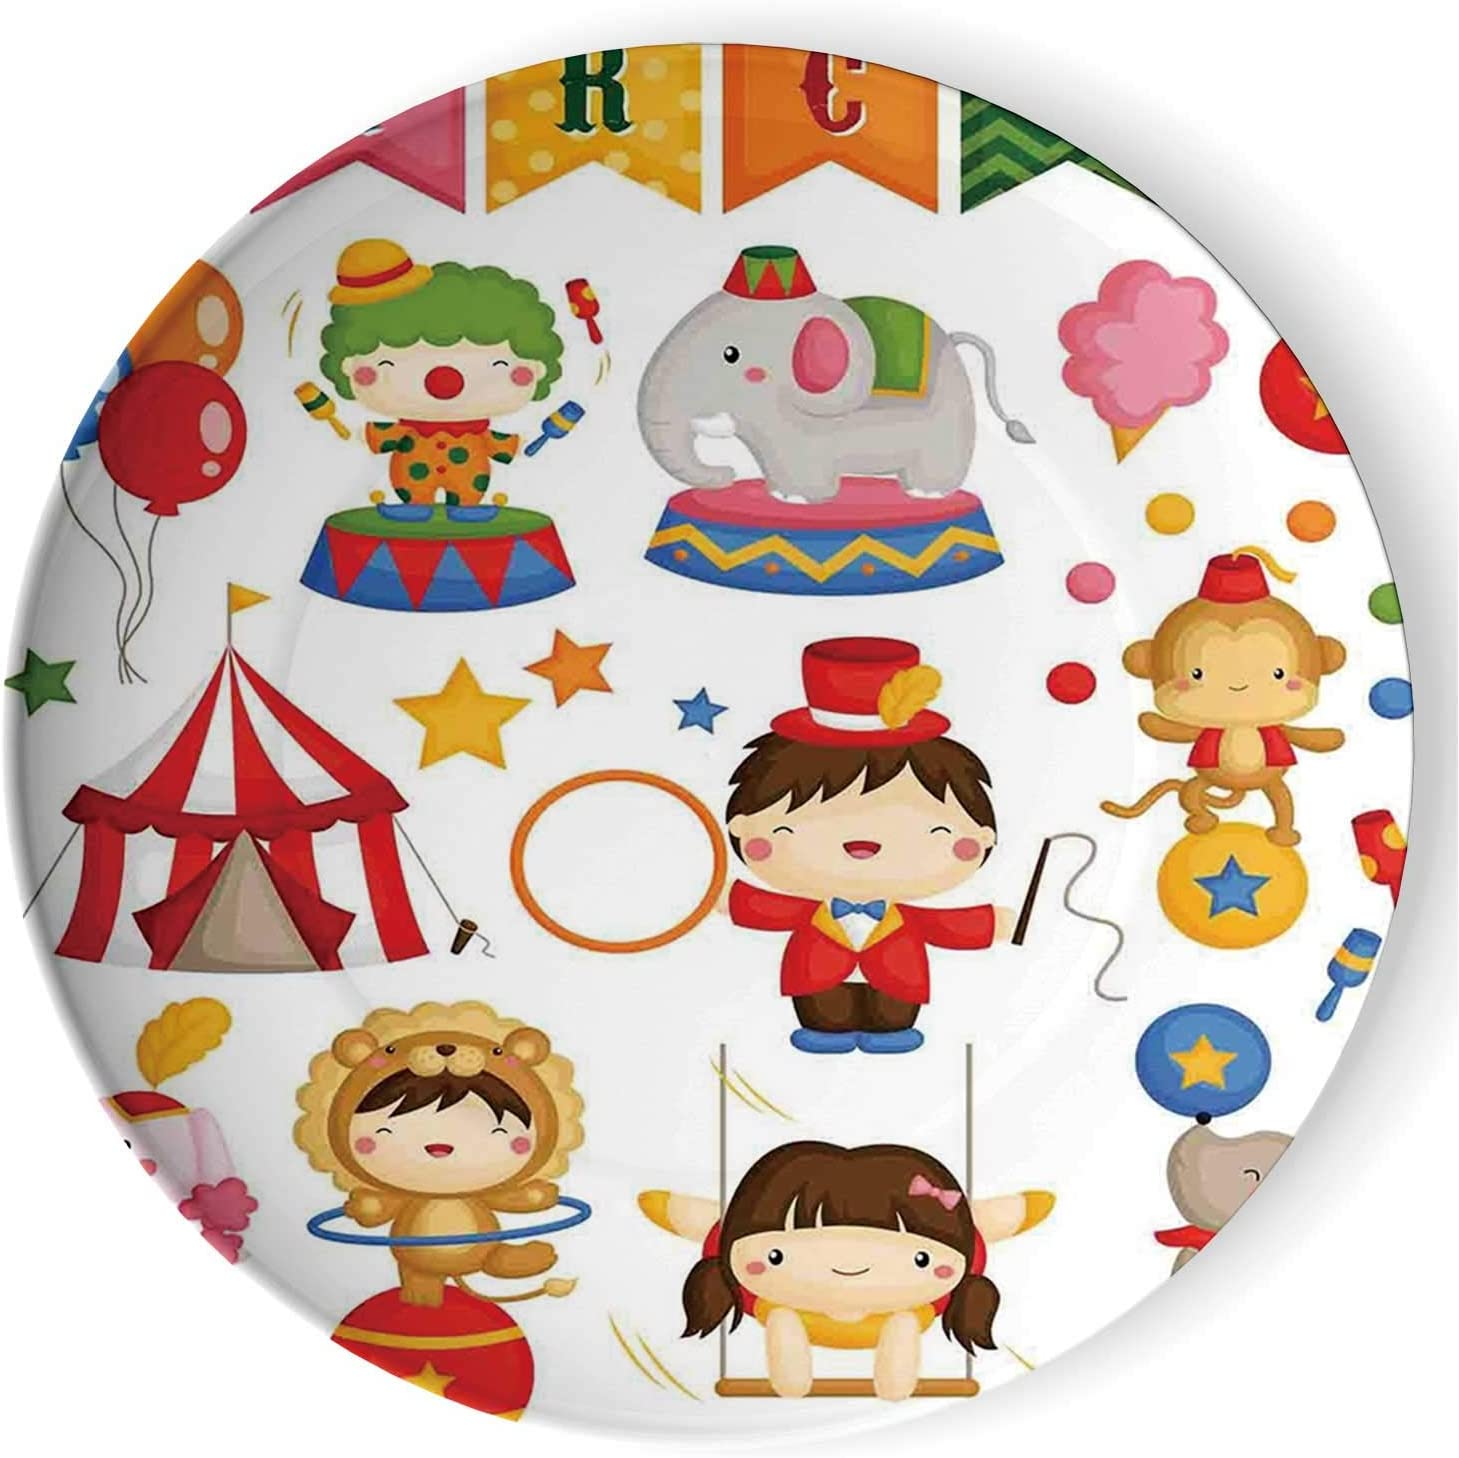 C COABALLA Colorfulta Claus Rides Reindeer Sleigh Flying in The Sky Home Ceramic Colorful Plate Collectible,055529 with Stand,6